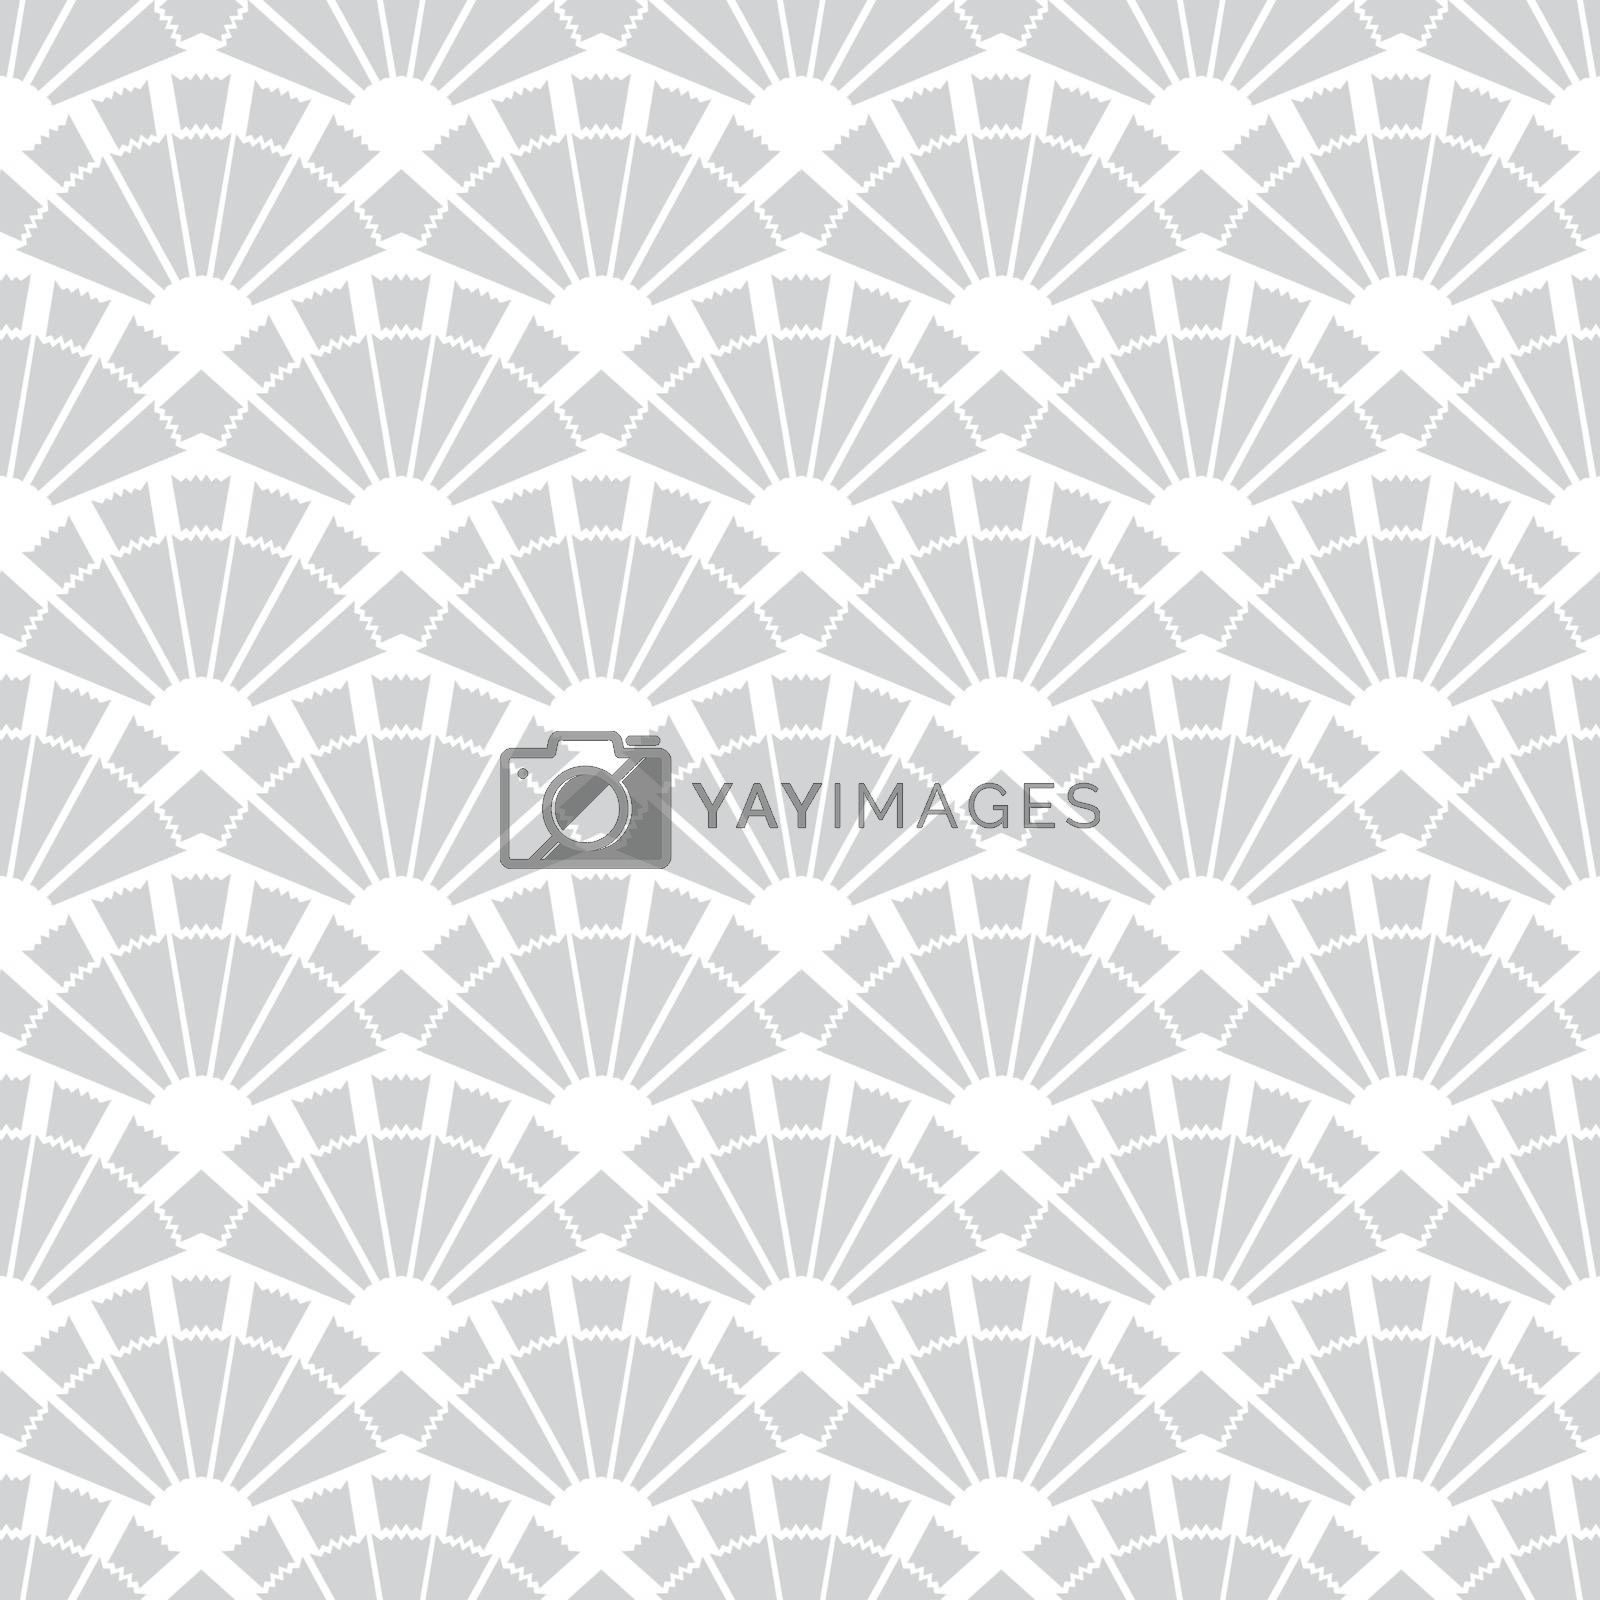 Vector Gray Fans Texture Seamless Pattern graphic design